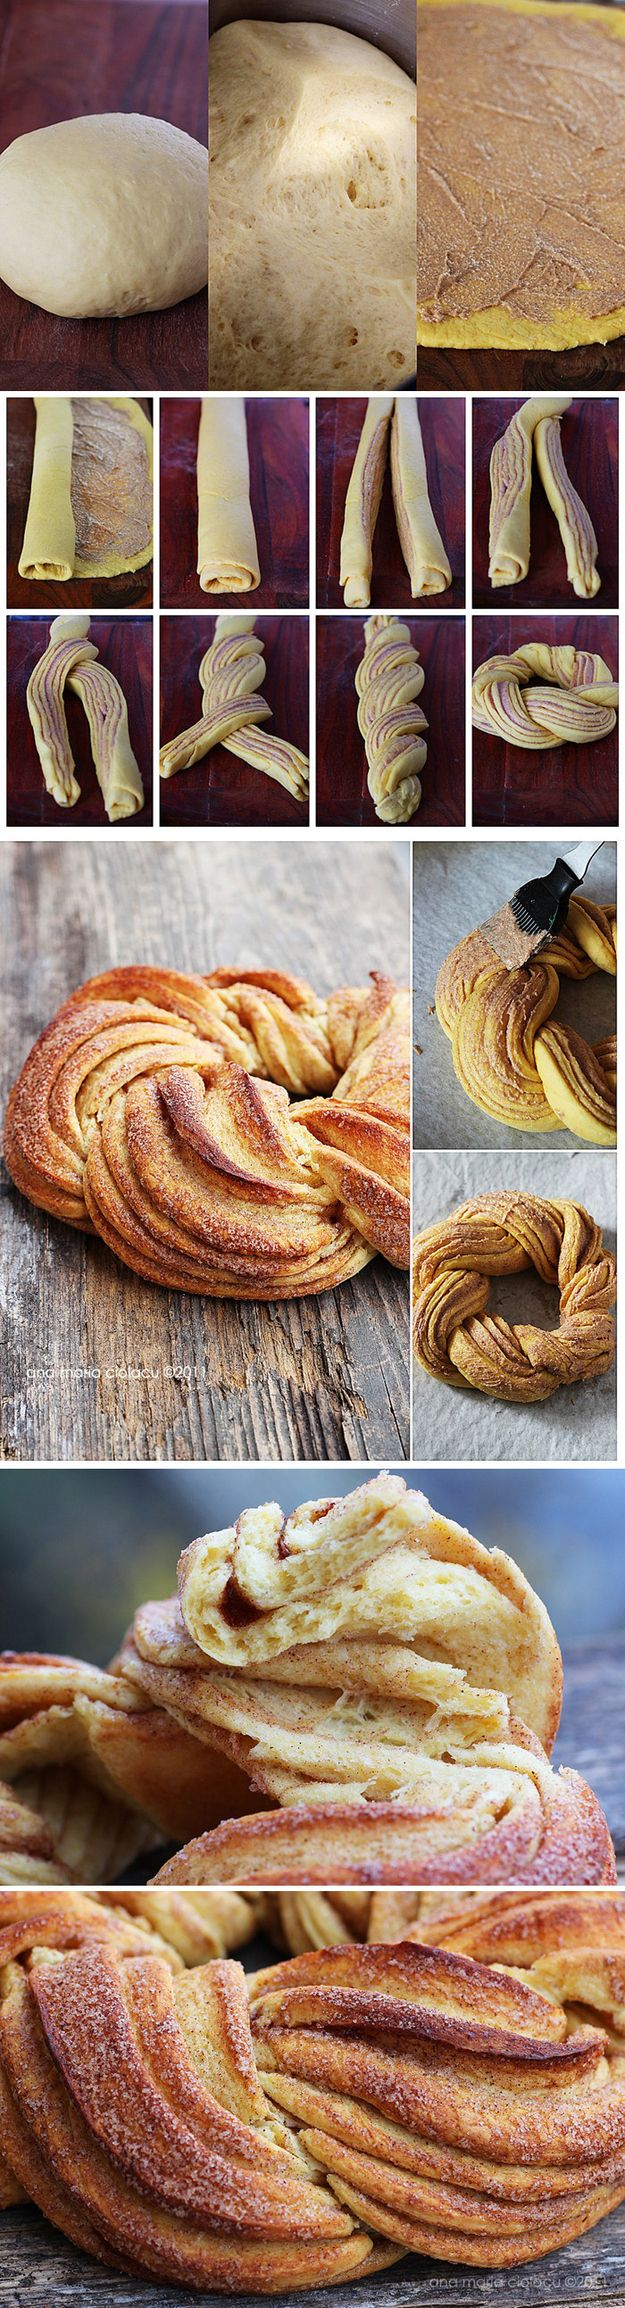 Estonian Braided Cinnamon Bread Is A BeautifulMiracle